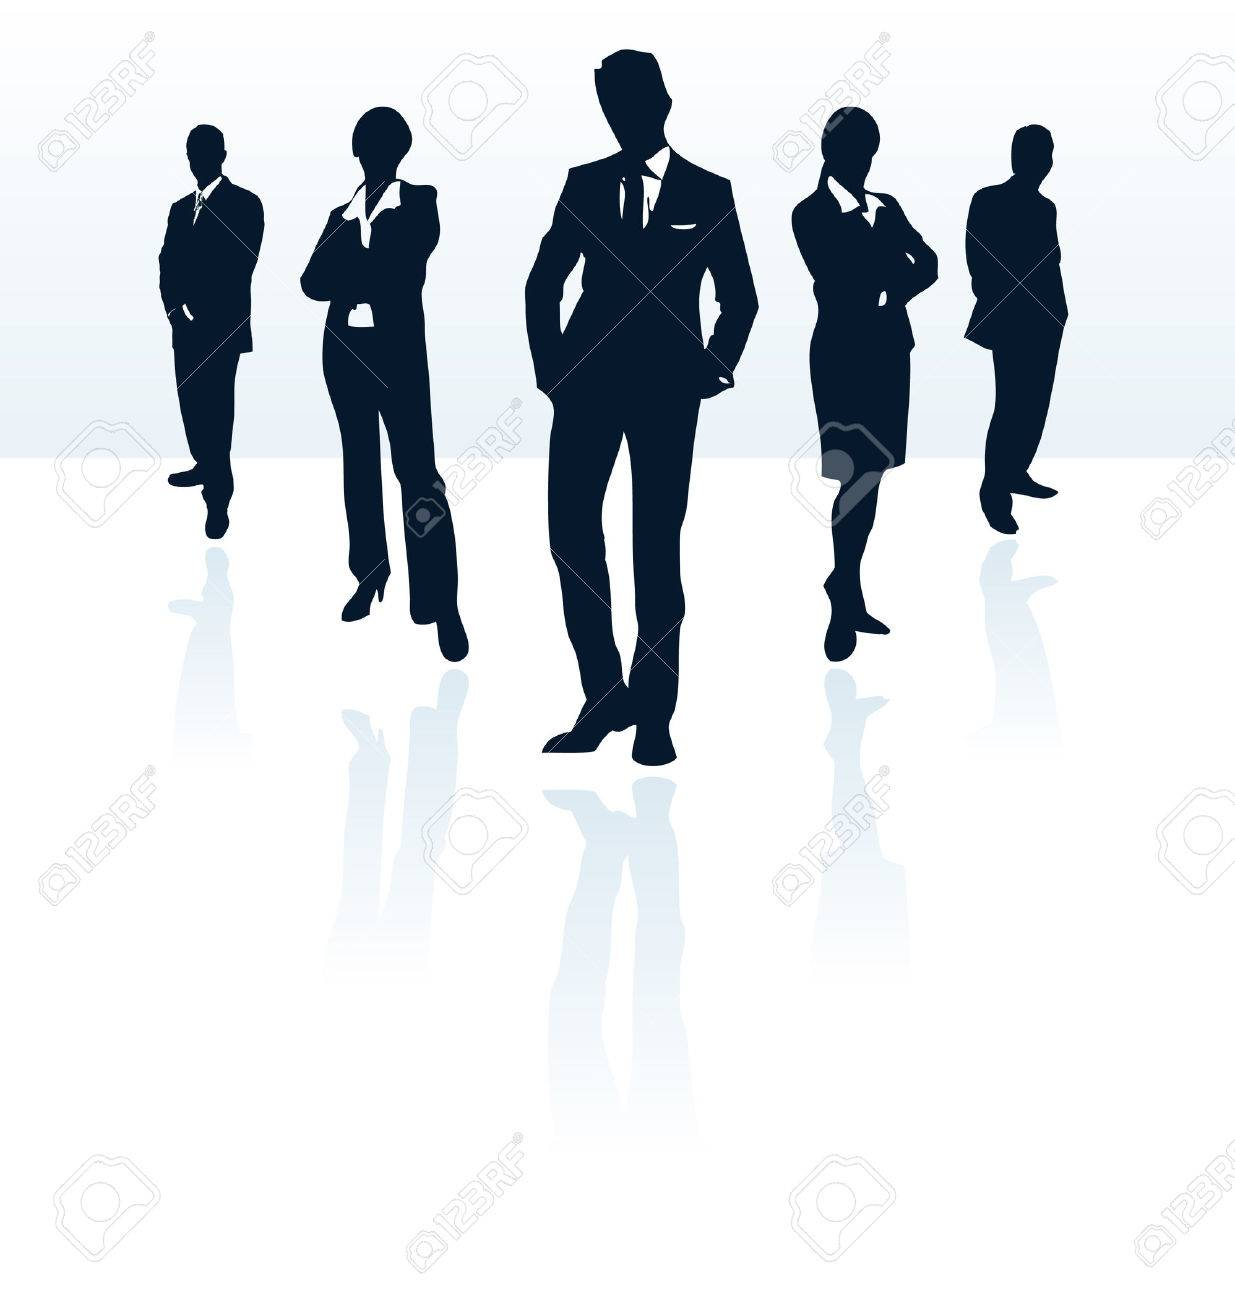 Silhouettes of vector business man and woman. More in my portfolio. Stock Vector - 4997466